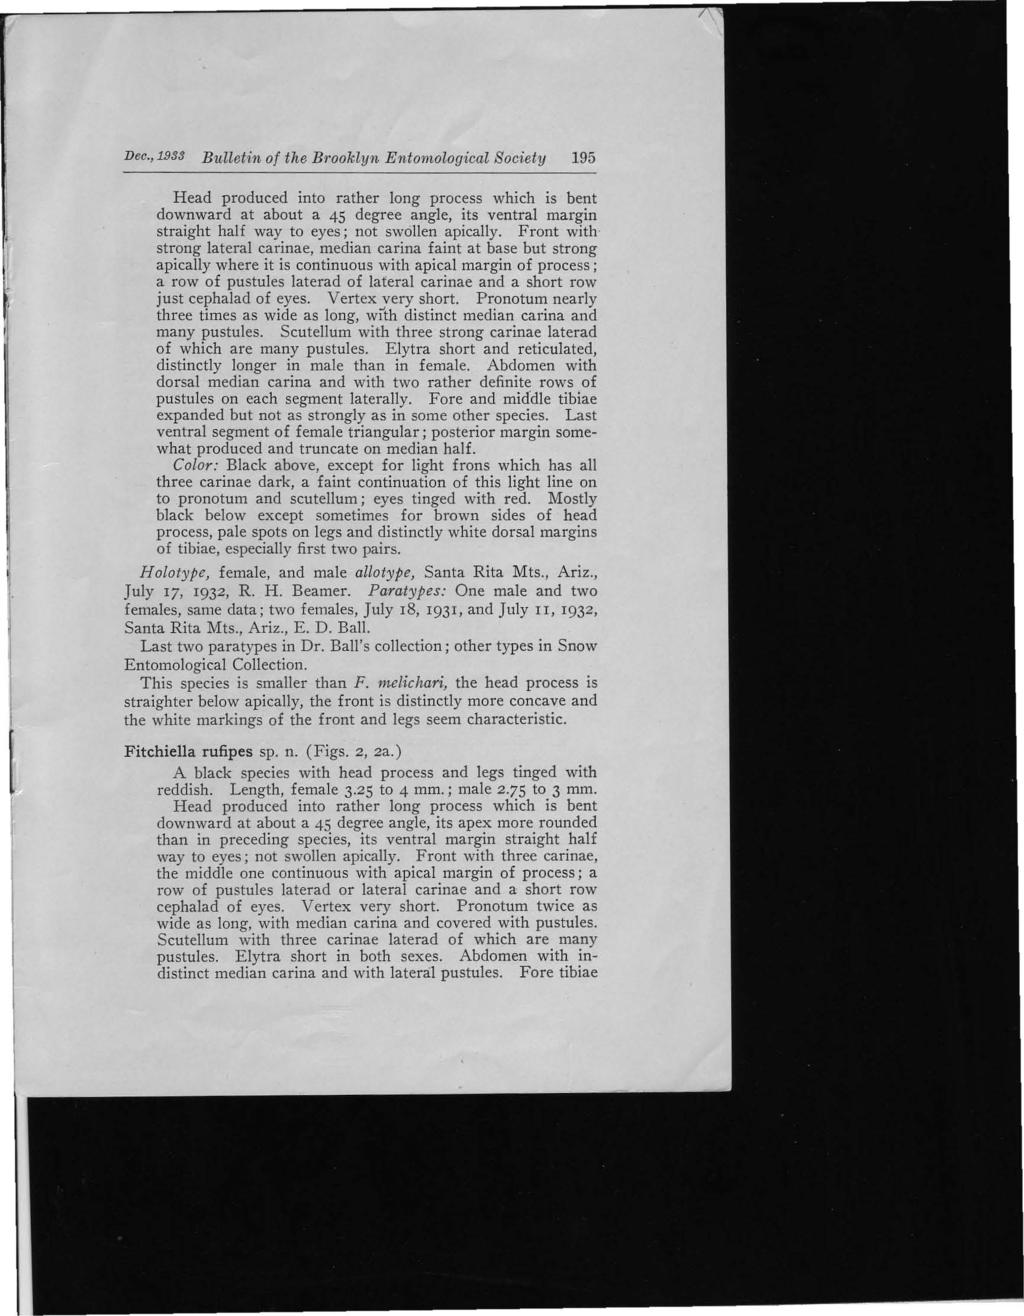 Dec., 1933 Bulletin of the Brooklyn Entomological Society 195 Head produced into rather long process which is bent downward at about a 45 degree angle, its ventral margin straight half way to eyes;